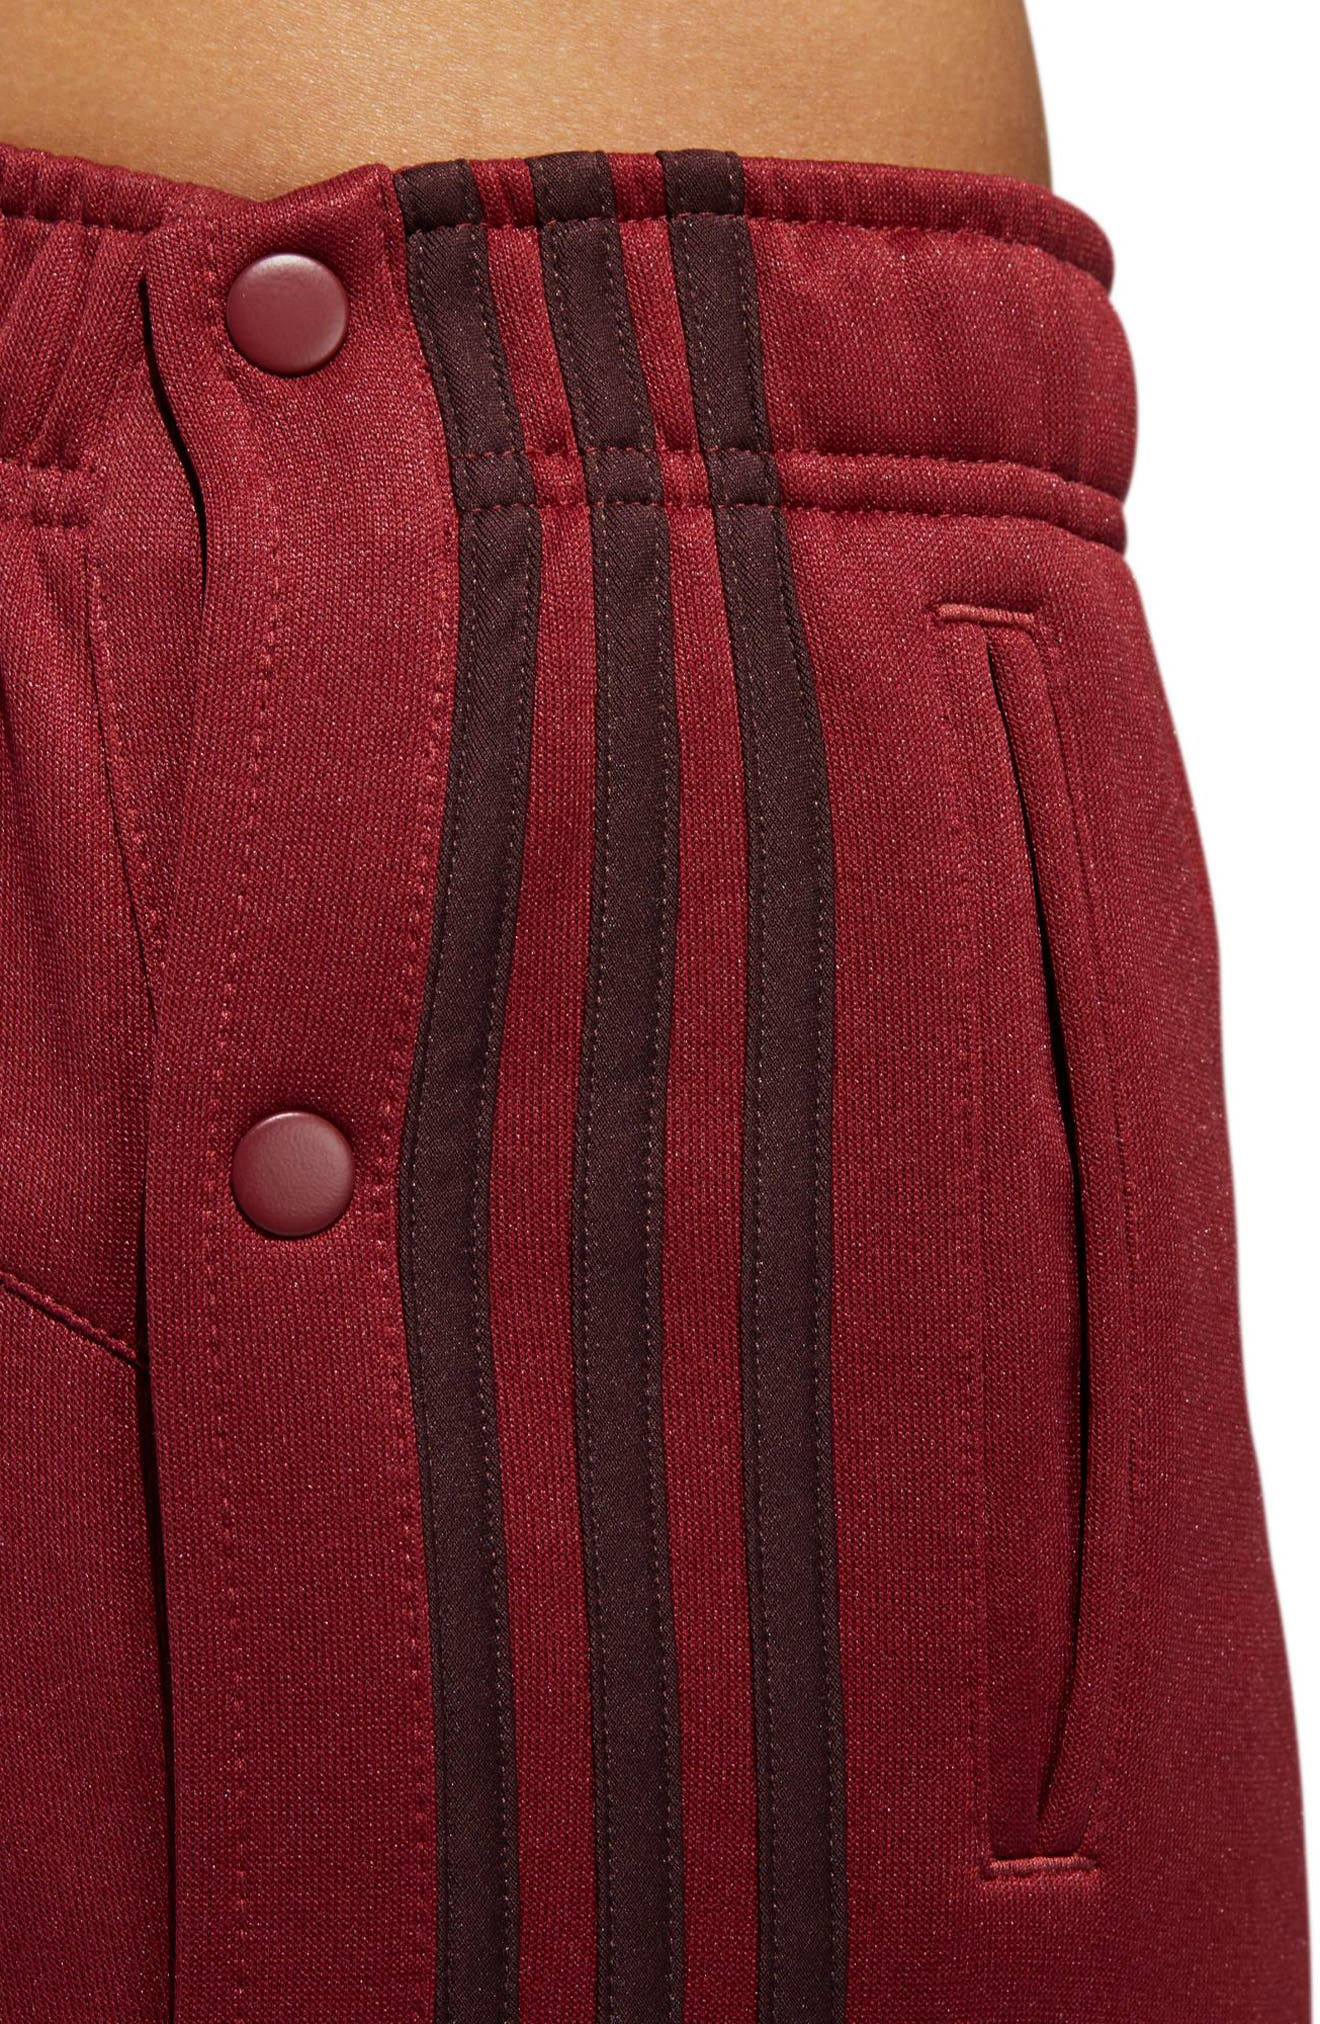 Tricot Snap Pants,                             Alternate thumbnail 6, color,                             NOBLE MAROON/ NIGHT RED